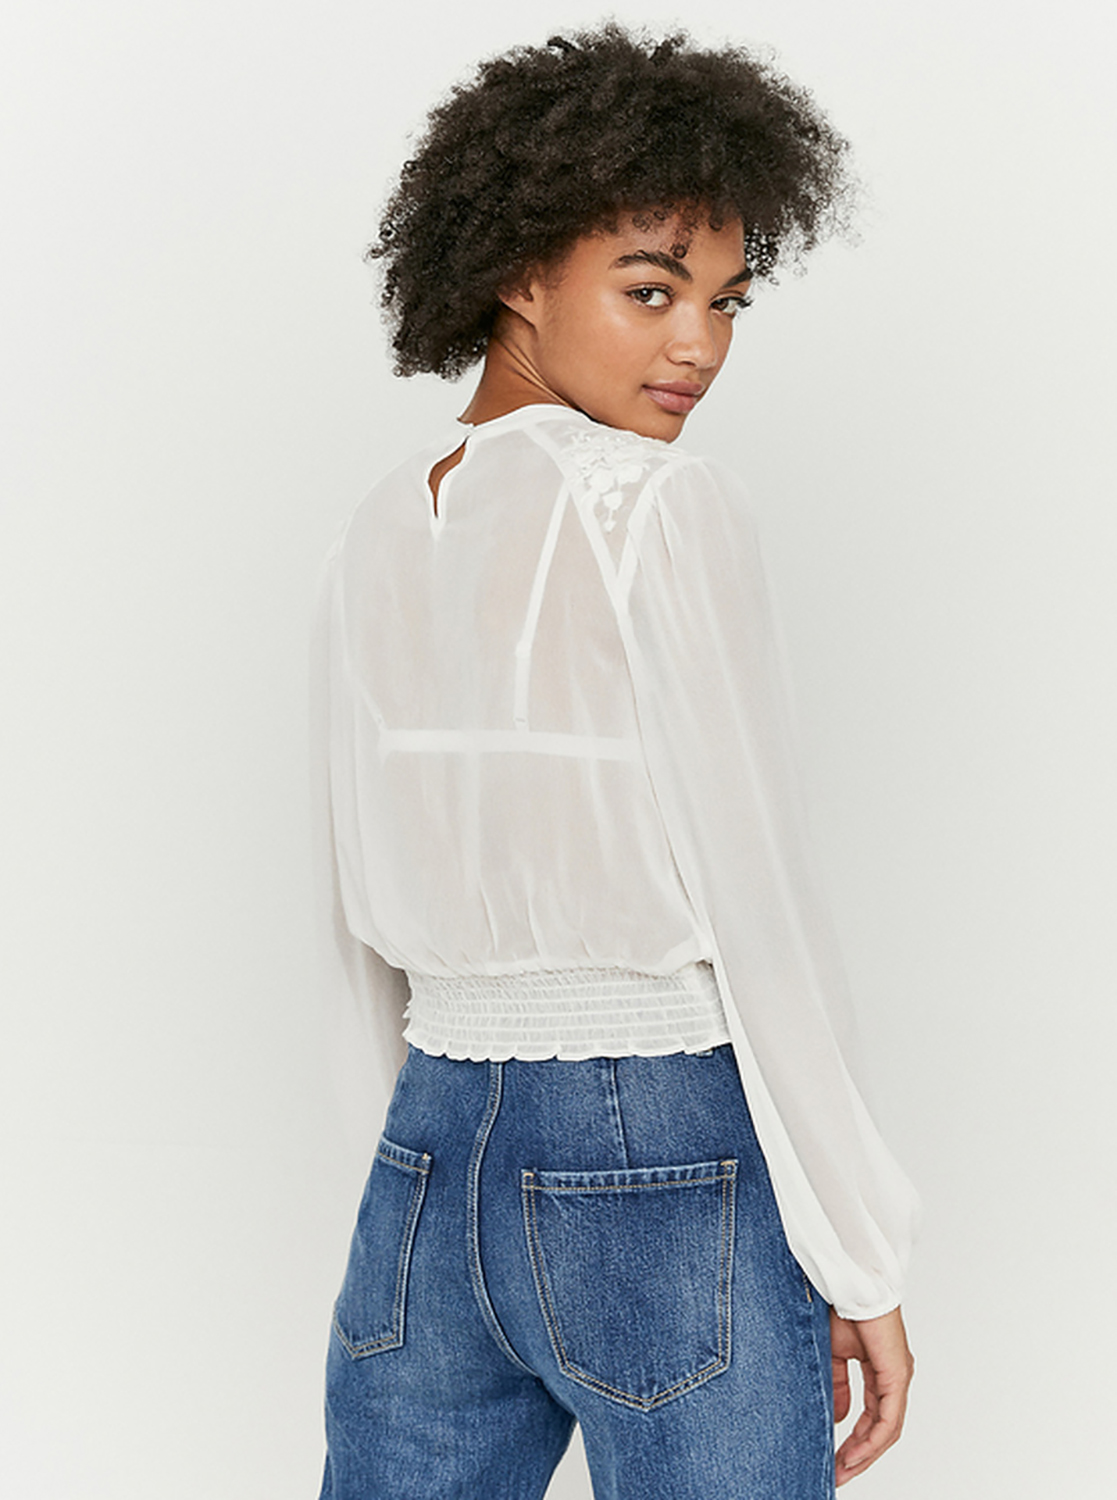 White blouse with TALLY WEiJL embroidery